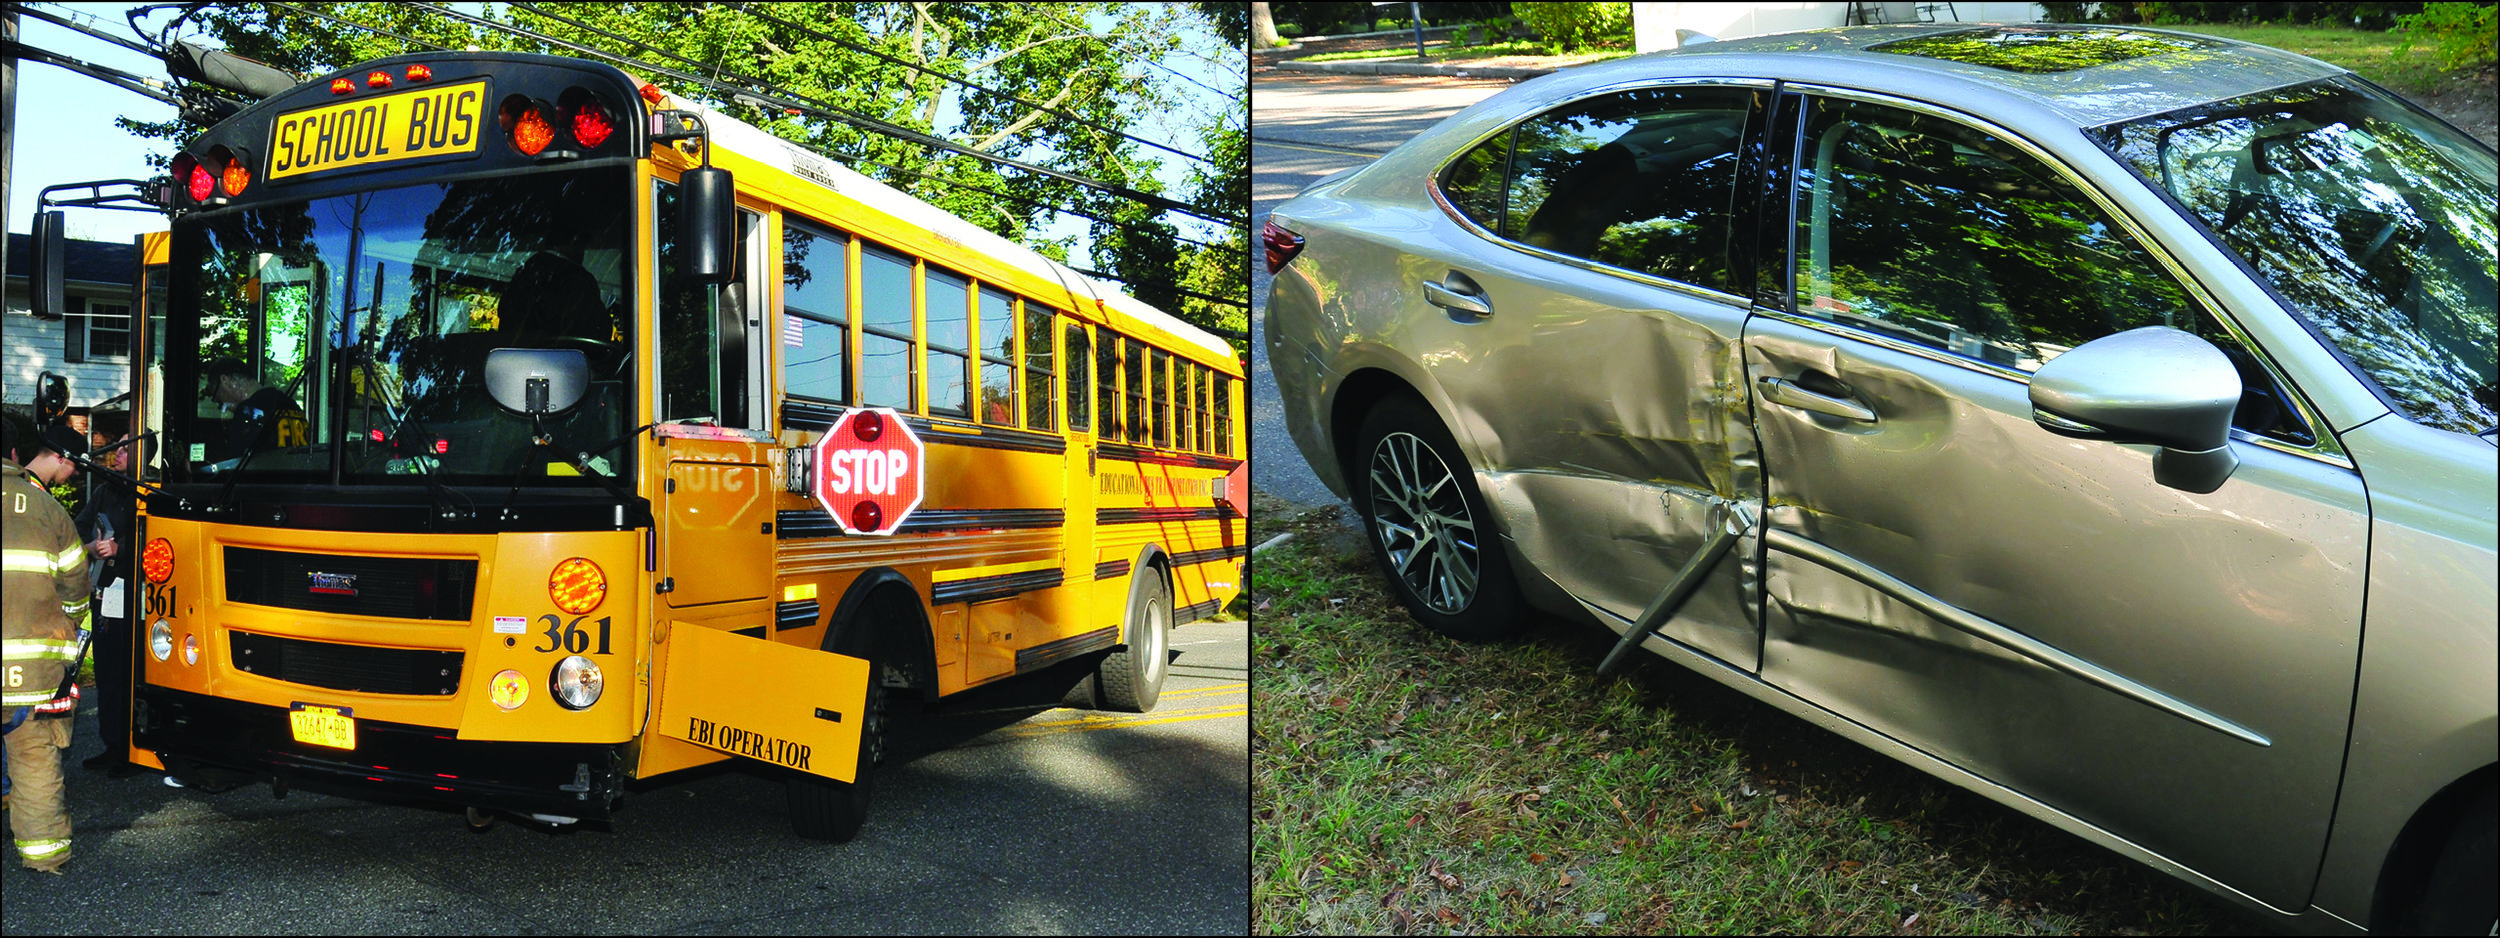 A Lexus, right, crashed into a Half Hollow Hills school bus, left, this morning, according to Suffolk police.   Photos by Steve Silverman